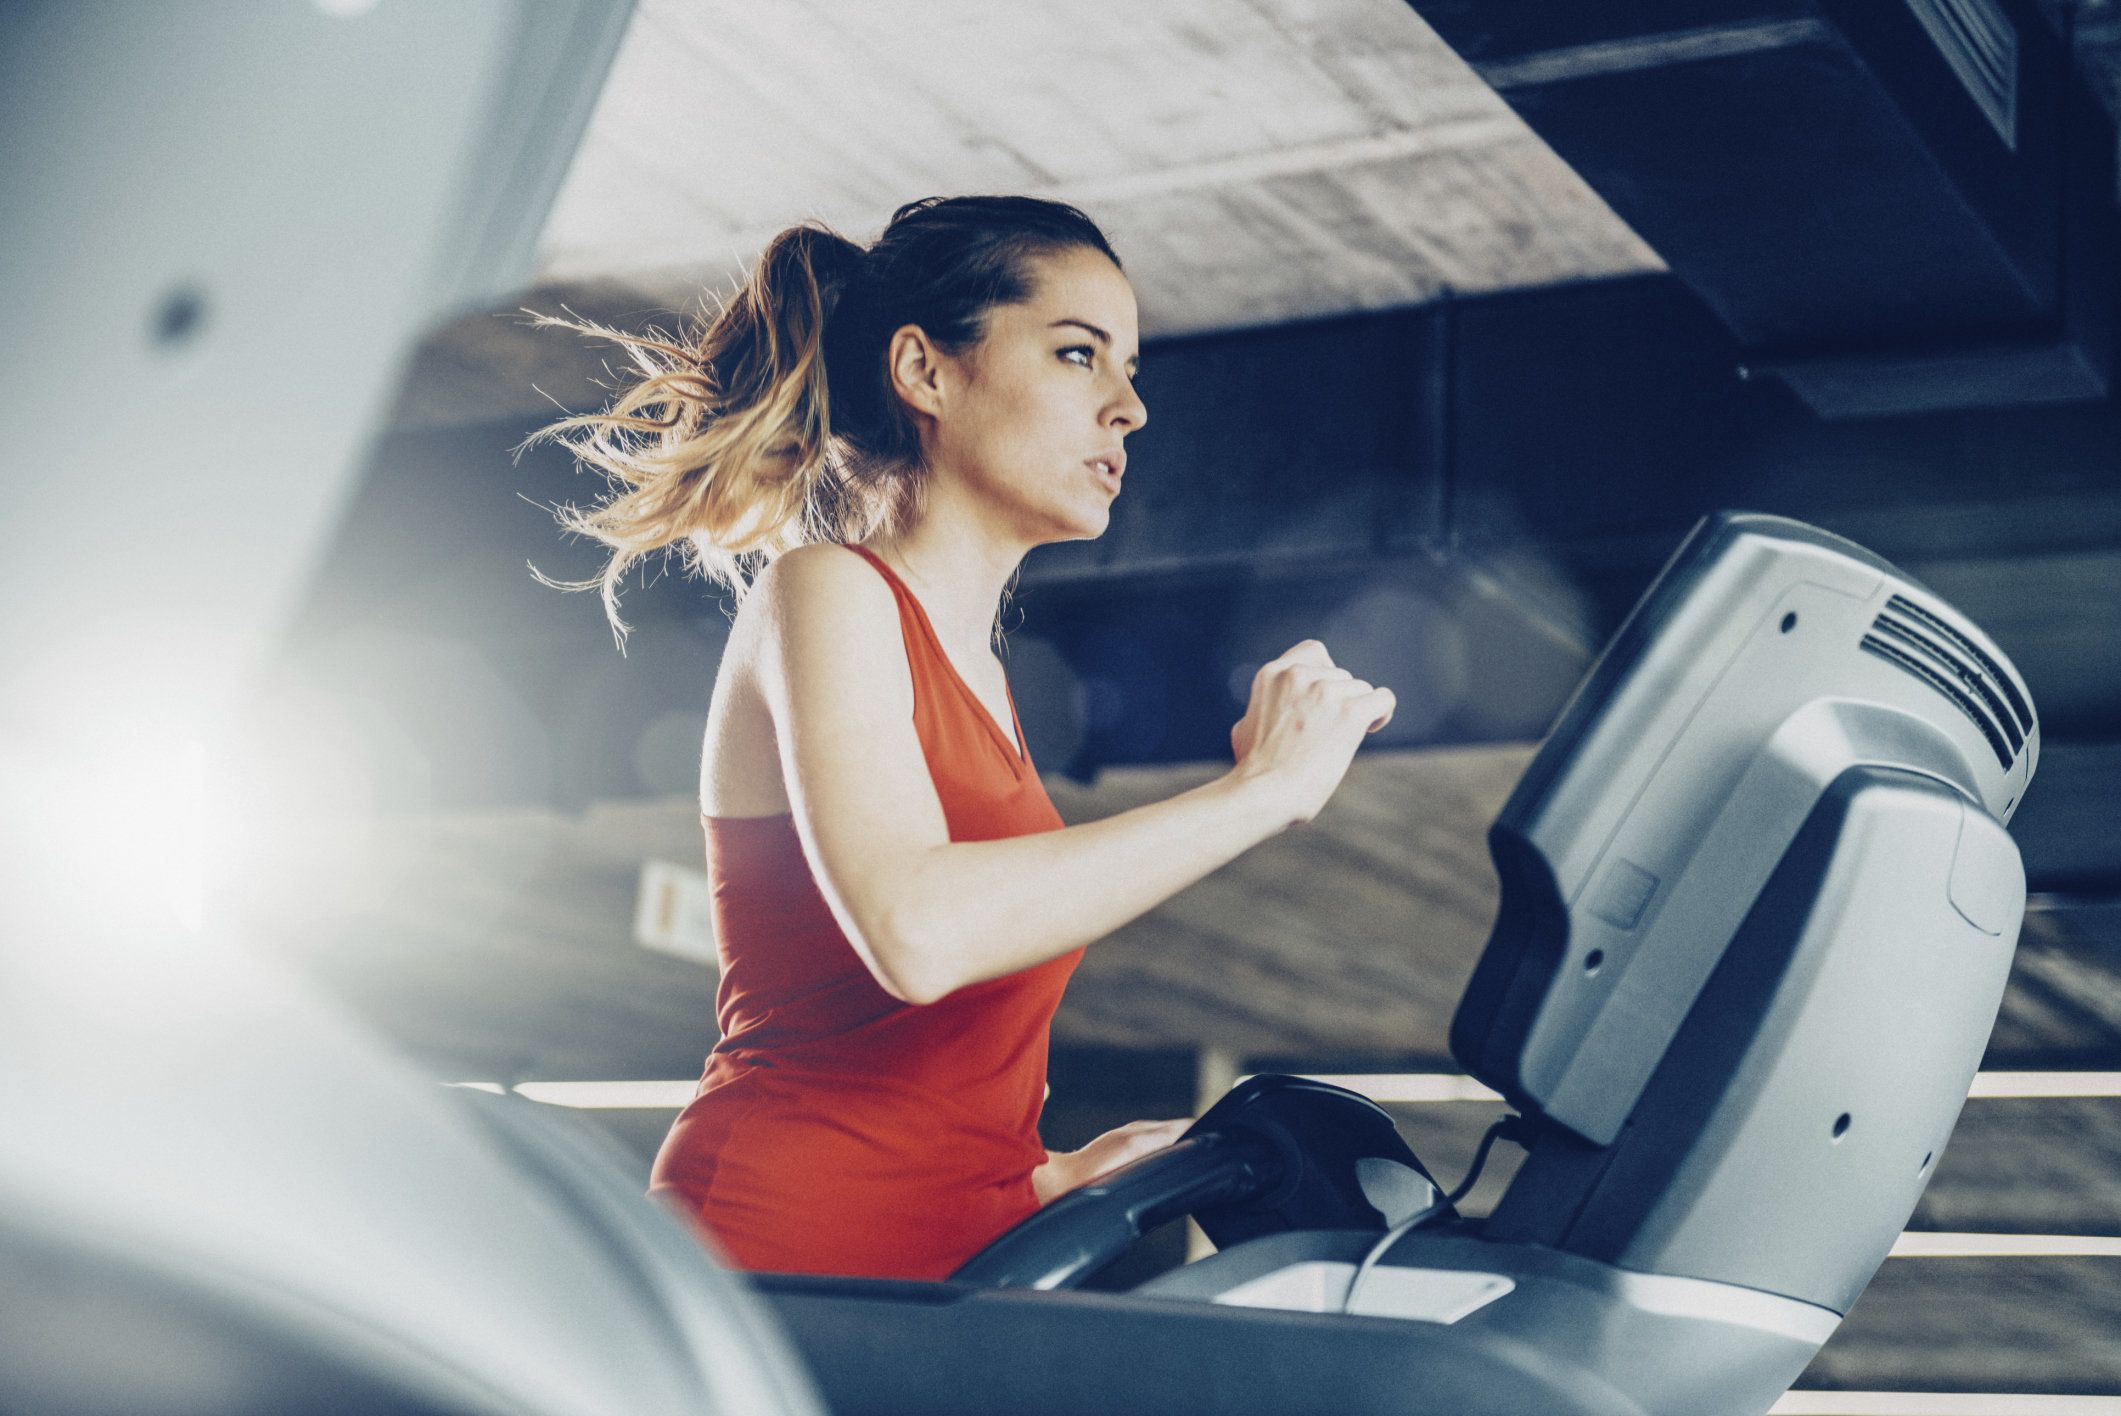 Ridiculous Reason Women Are Excluded From Exercise